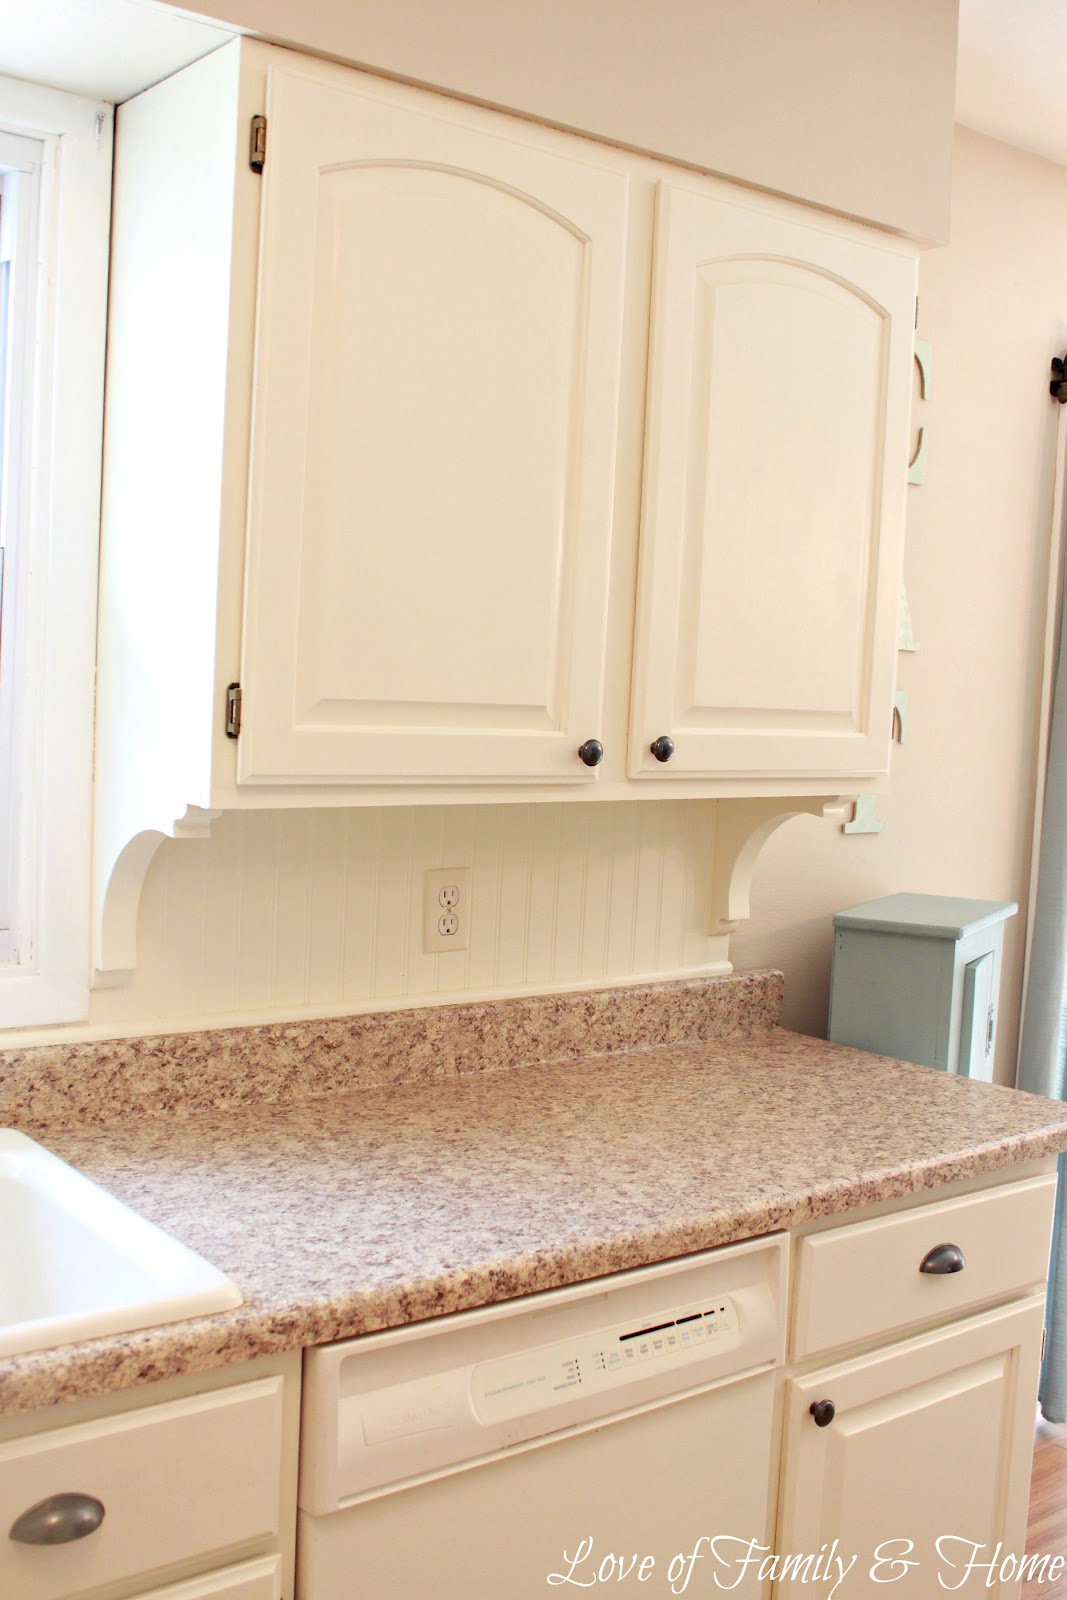 beadboard backsplash, corbel love, & a few other kitchen updates